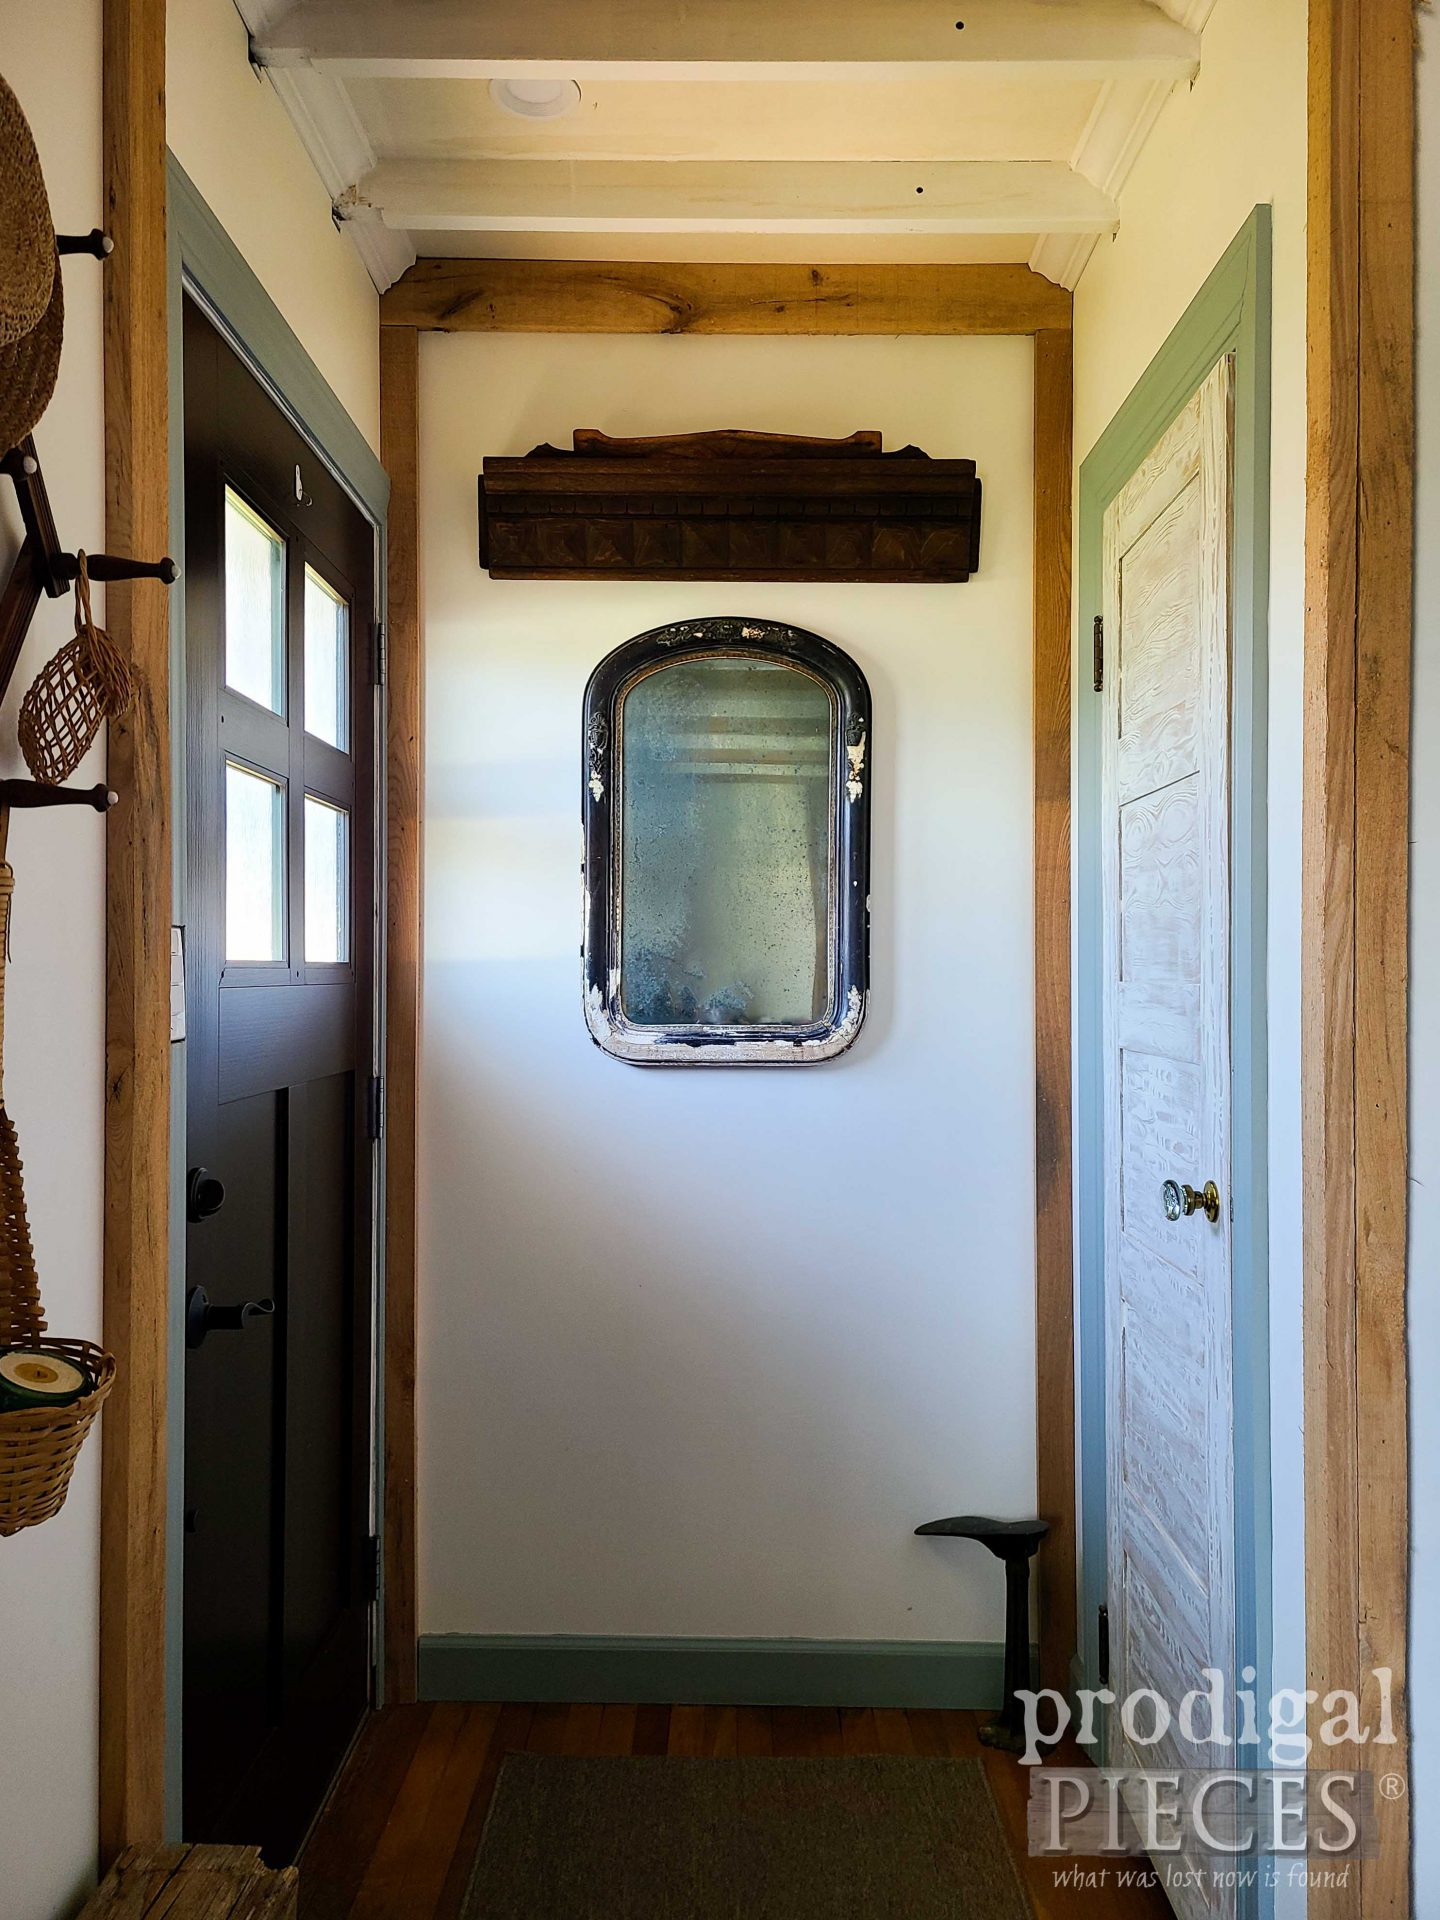 Antique Farmhouse Salvaged Decor from Aged Finds by Larissa of Prodigal Pieces   prodigalpieces.com #prodigalpieces #farmhouse #antique #home #homedecor